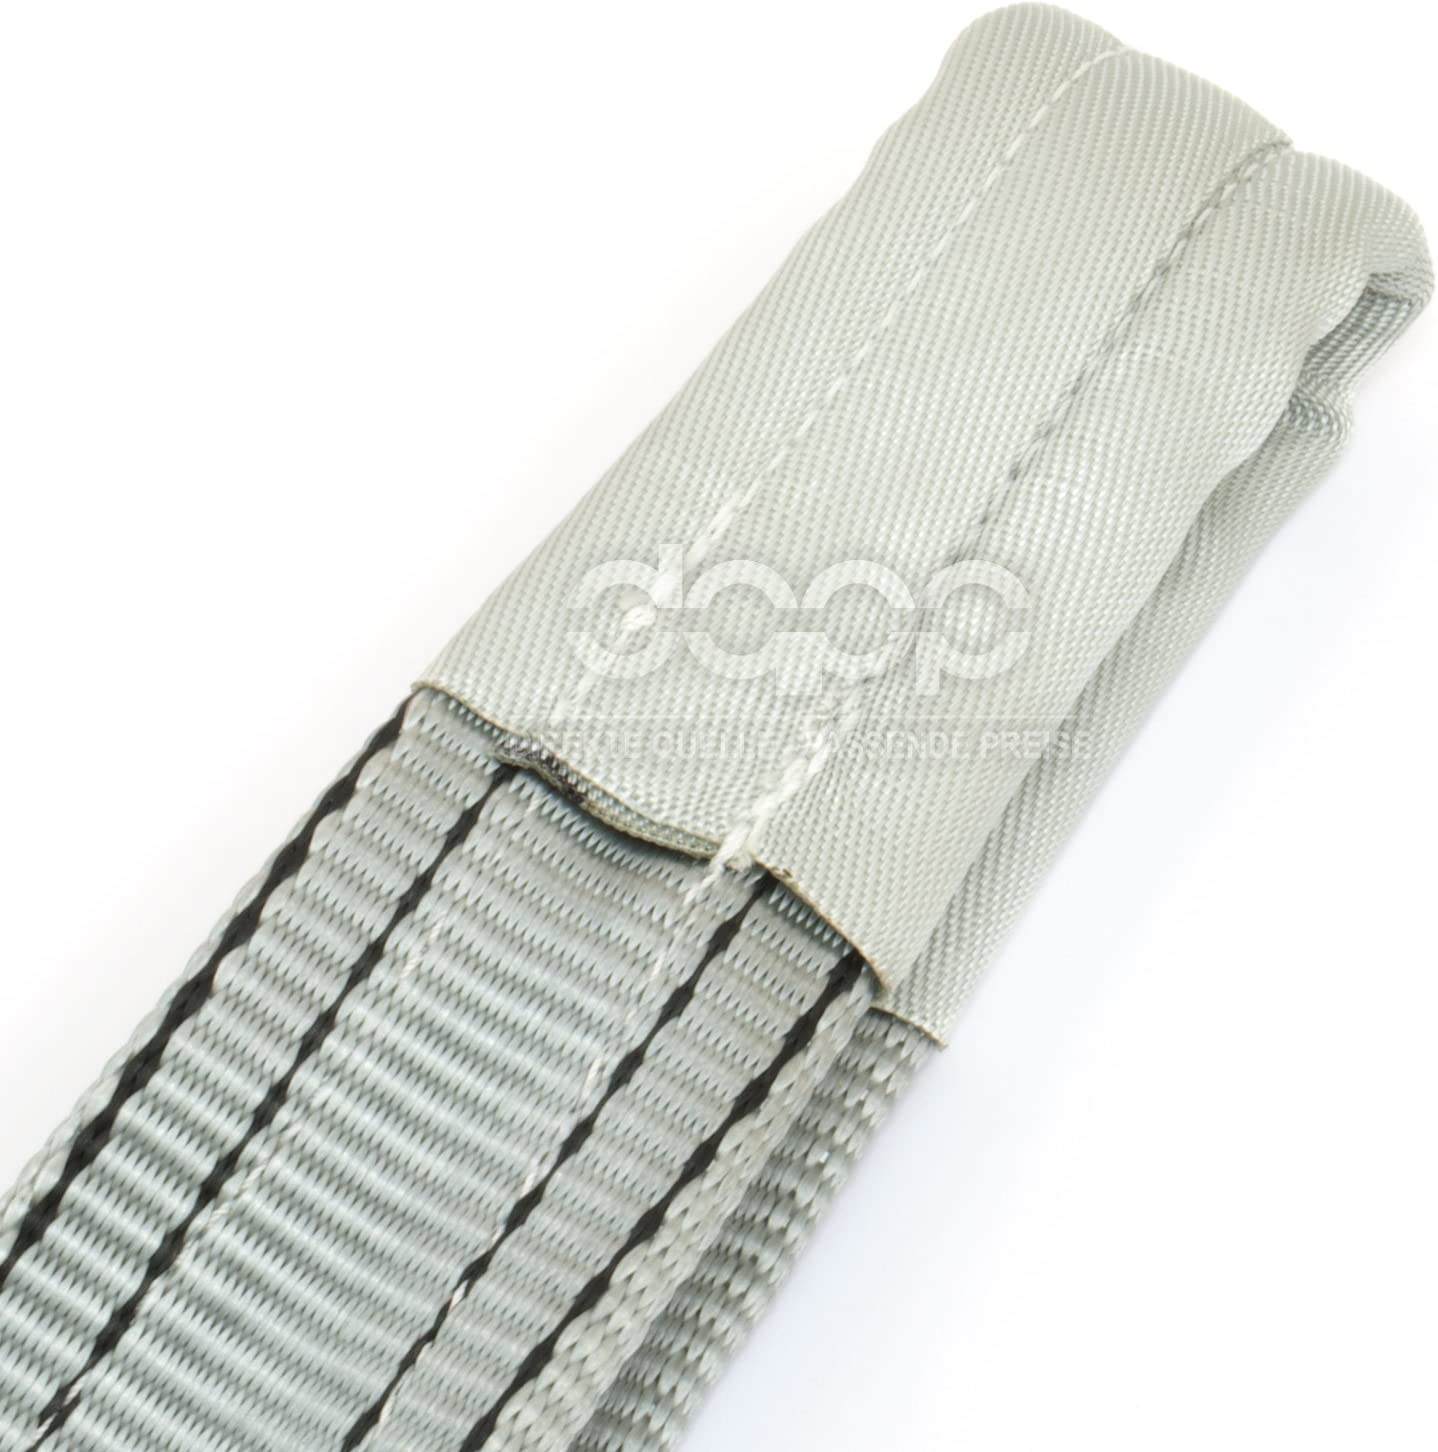 2 pc//s 4000kg cargo sling strap 5m 4 T